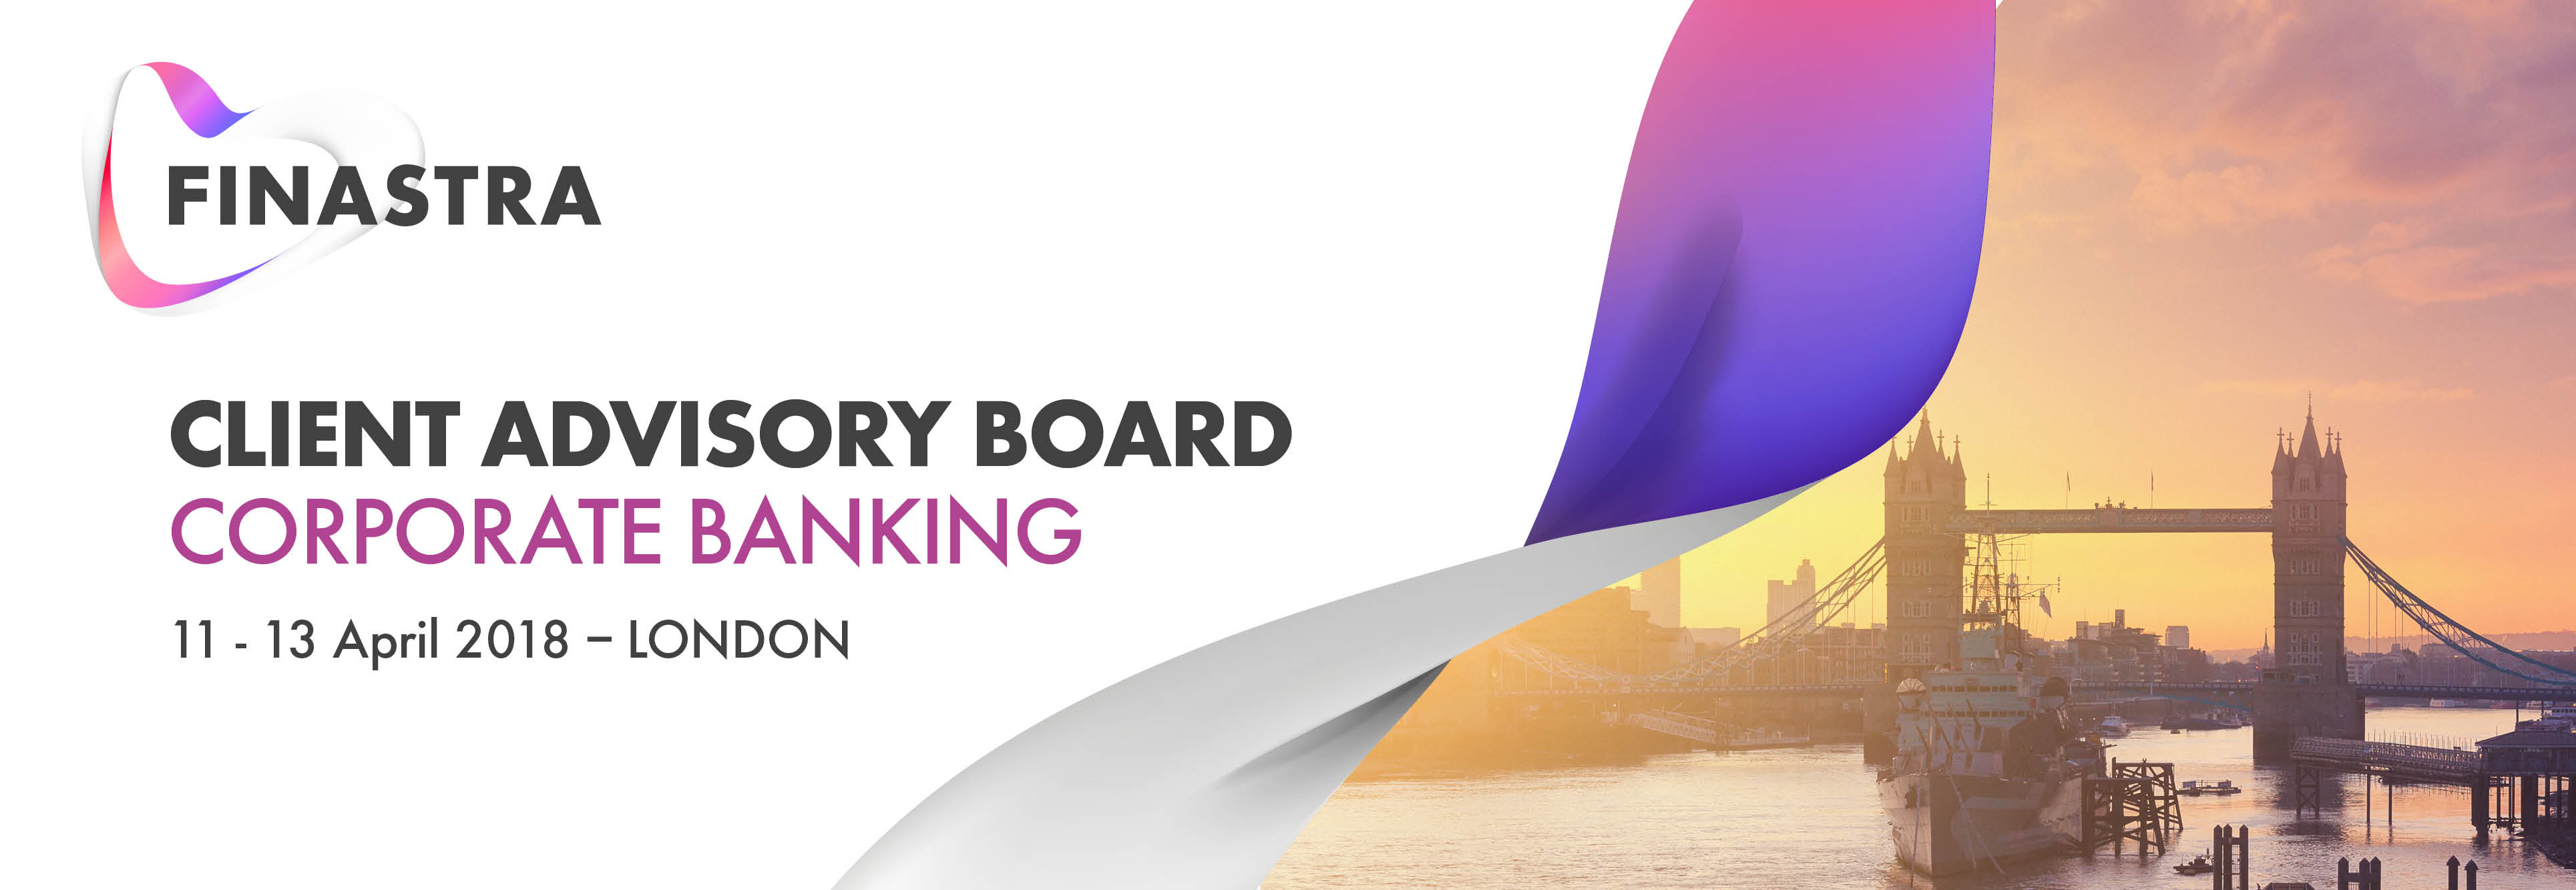 2018 Finastra Corporate Banking Client Advisory Board (London)